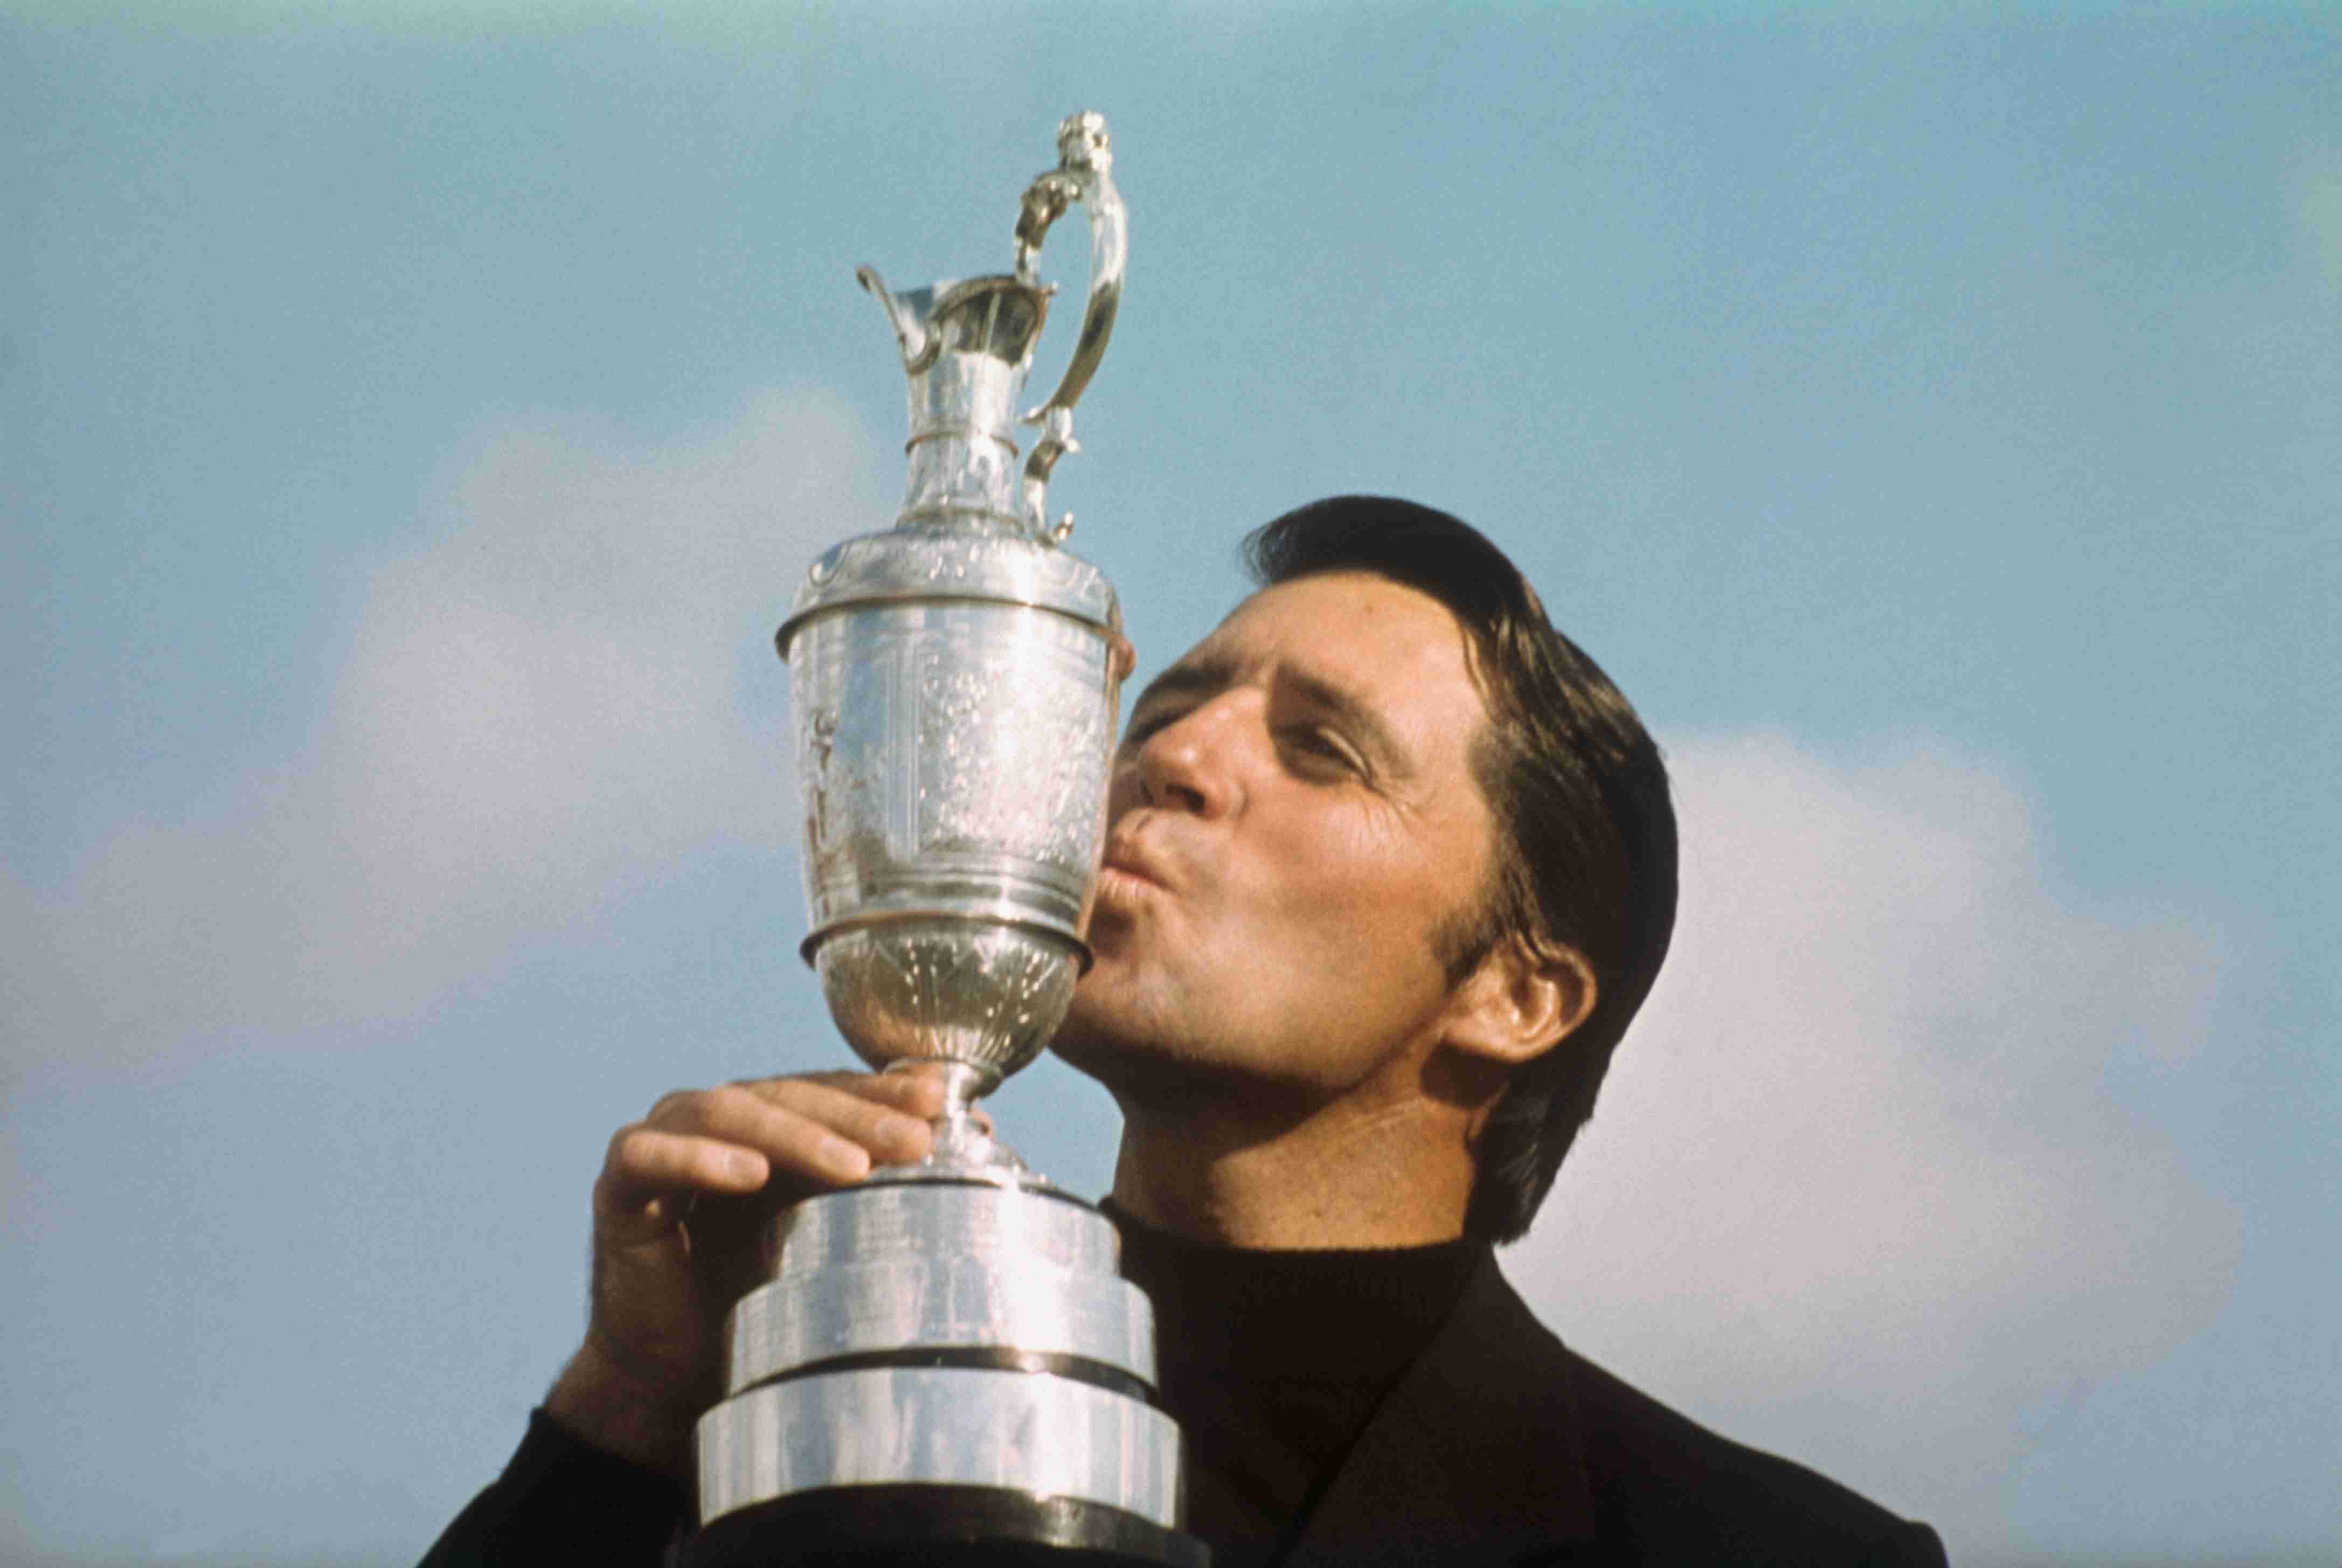 Gary Player with the Claret Jug after winning the 1974 Open Championship